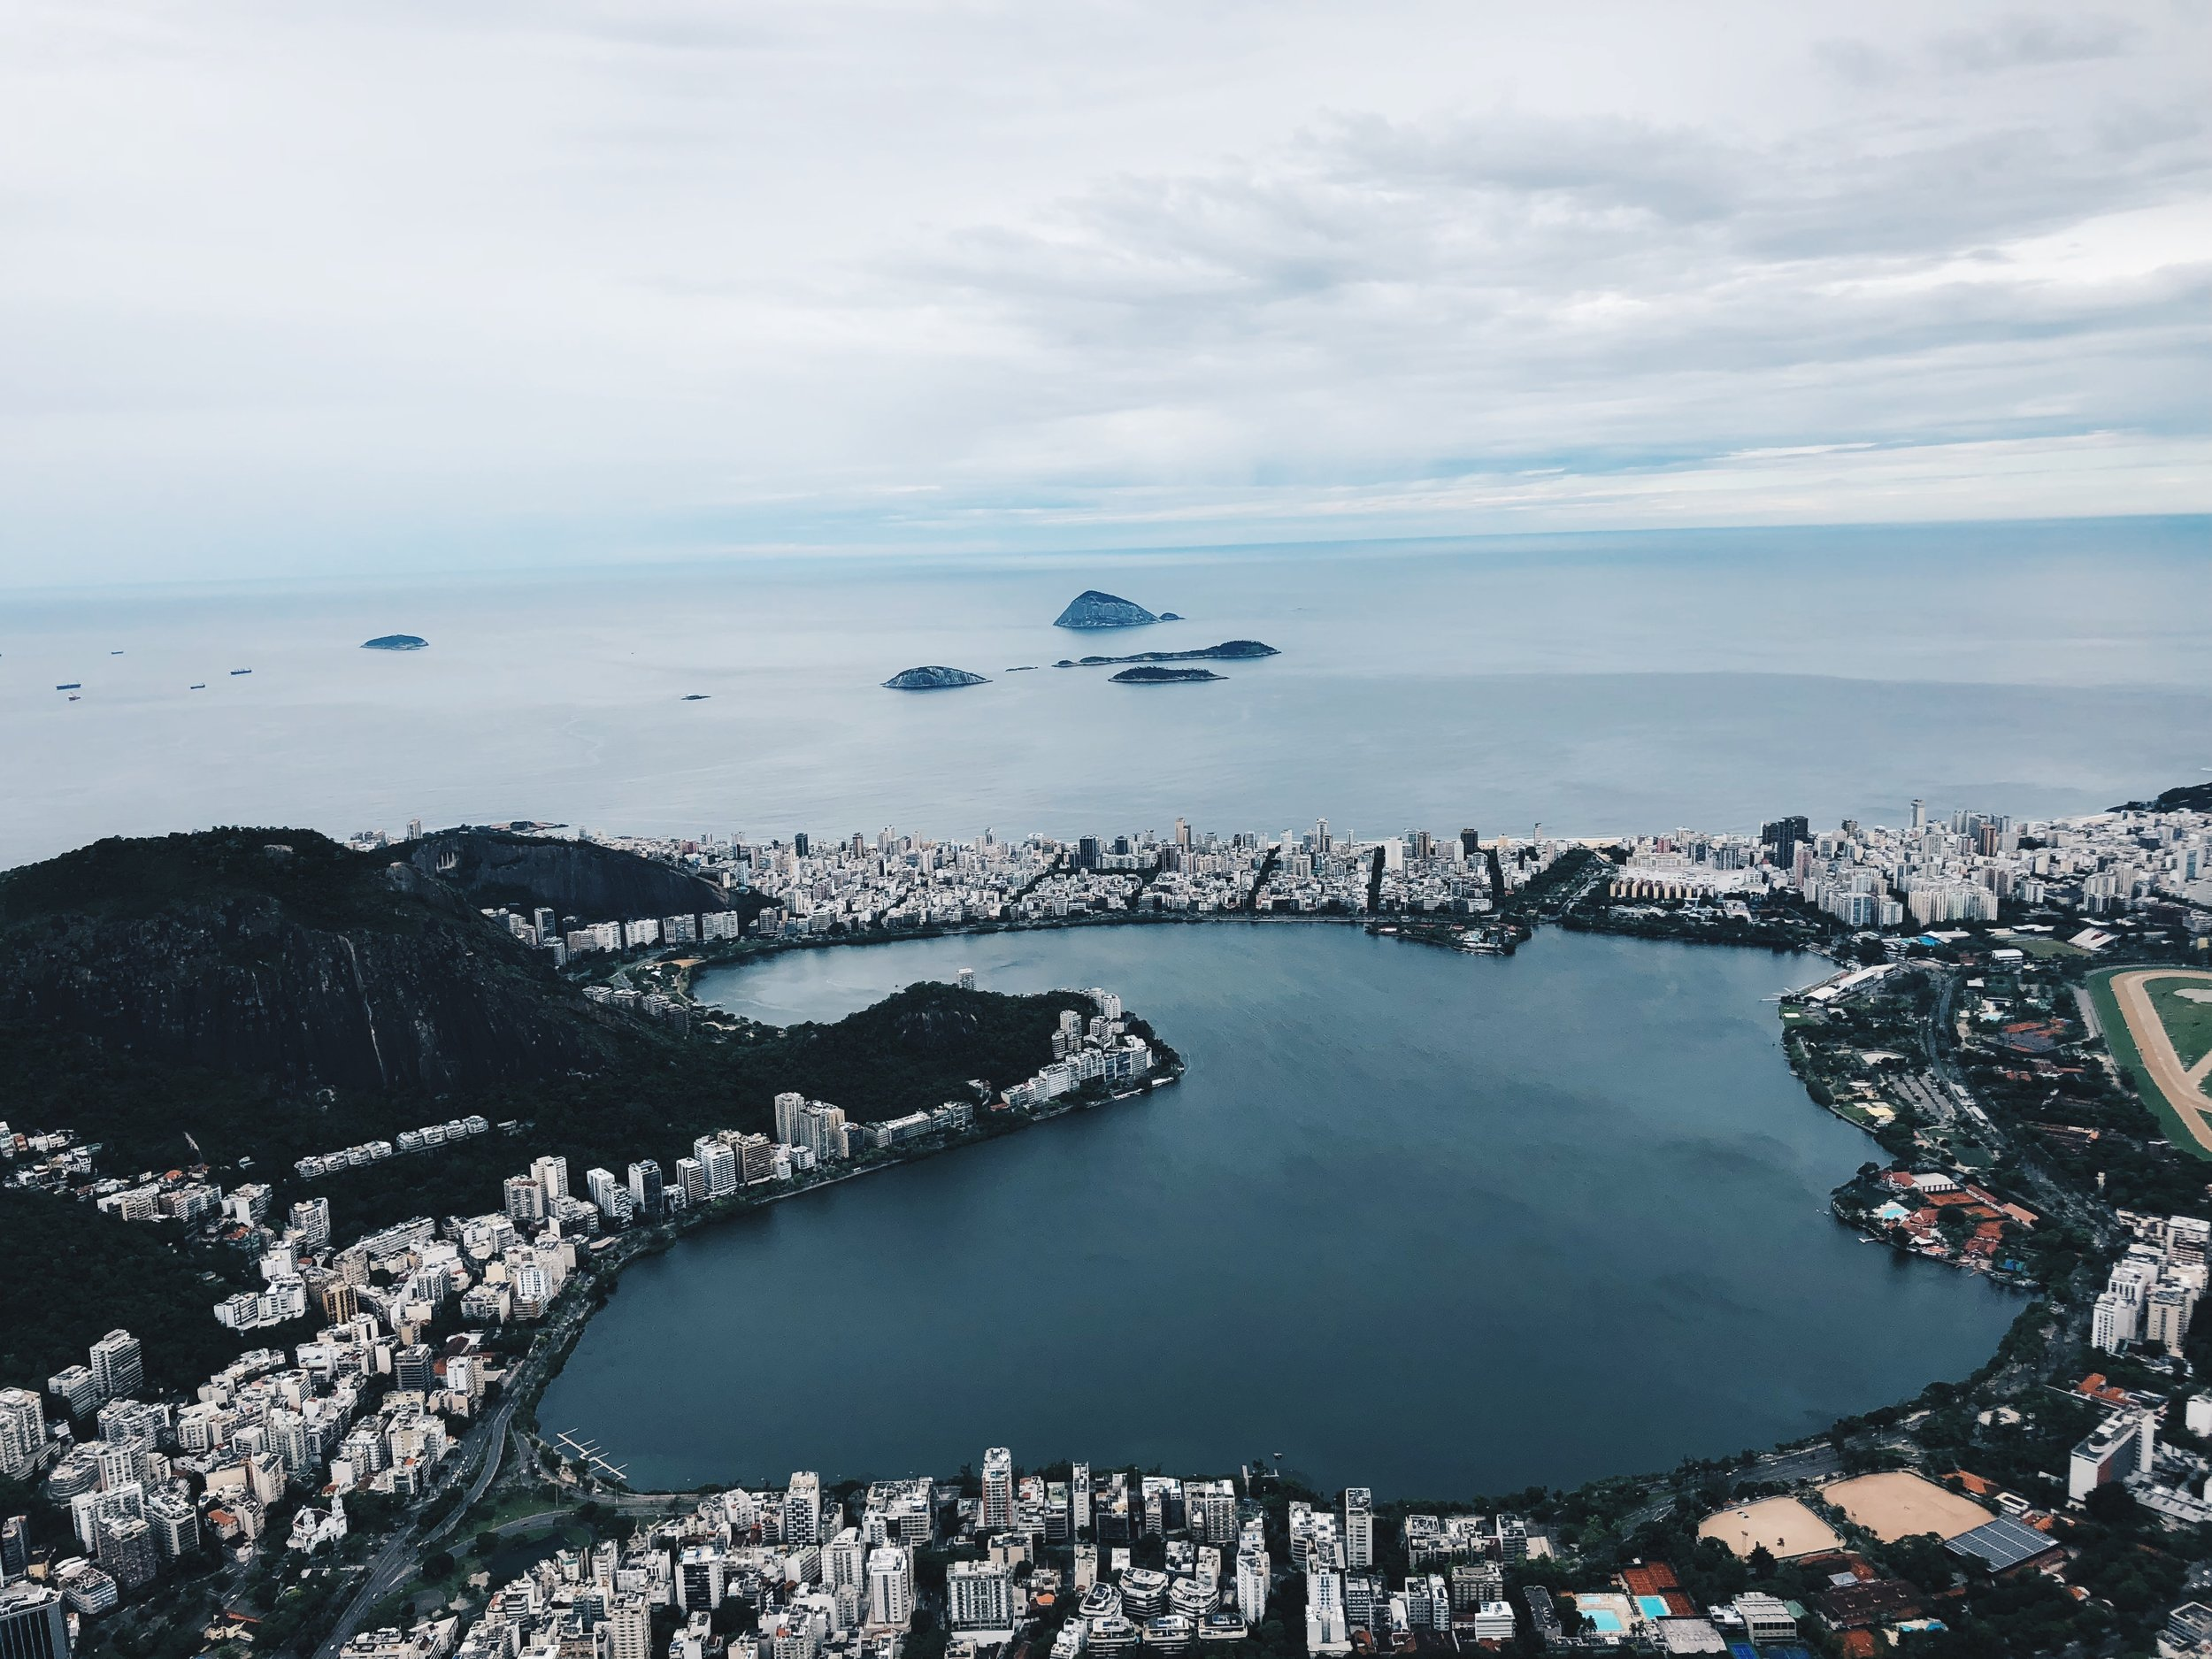 Views from Christ the Redeemer